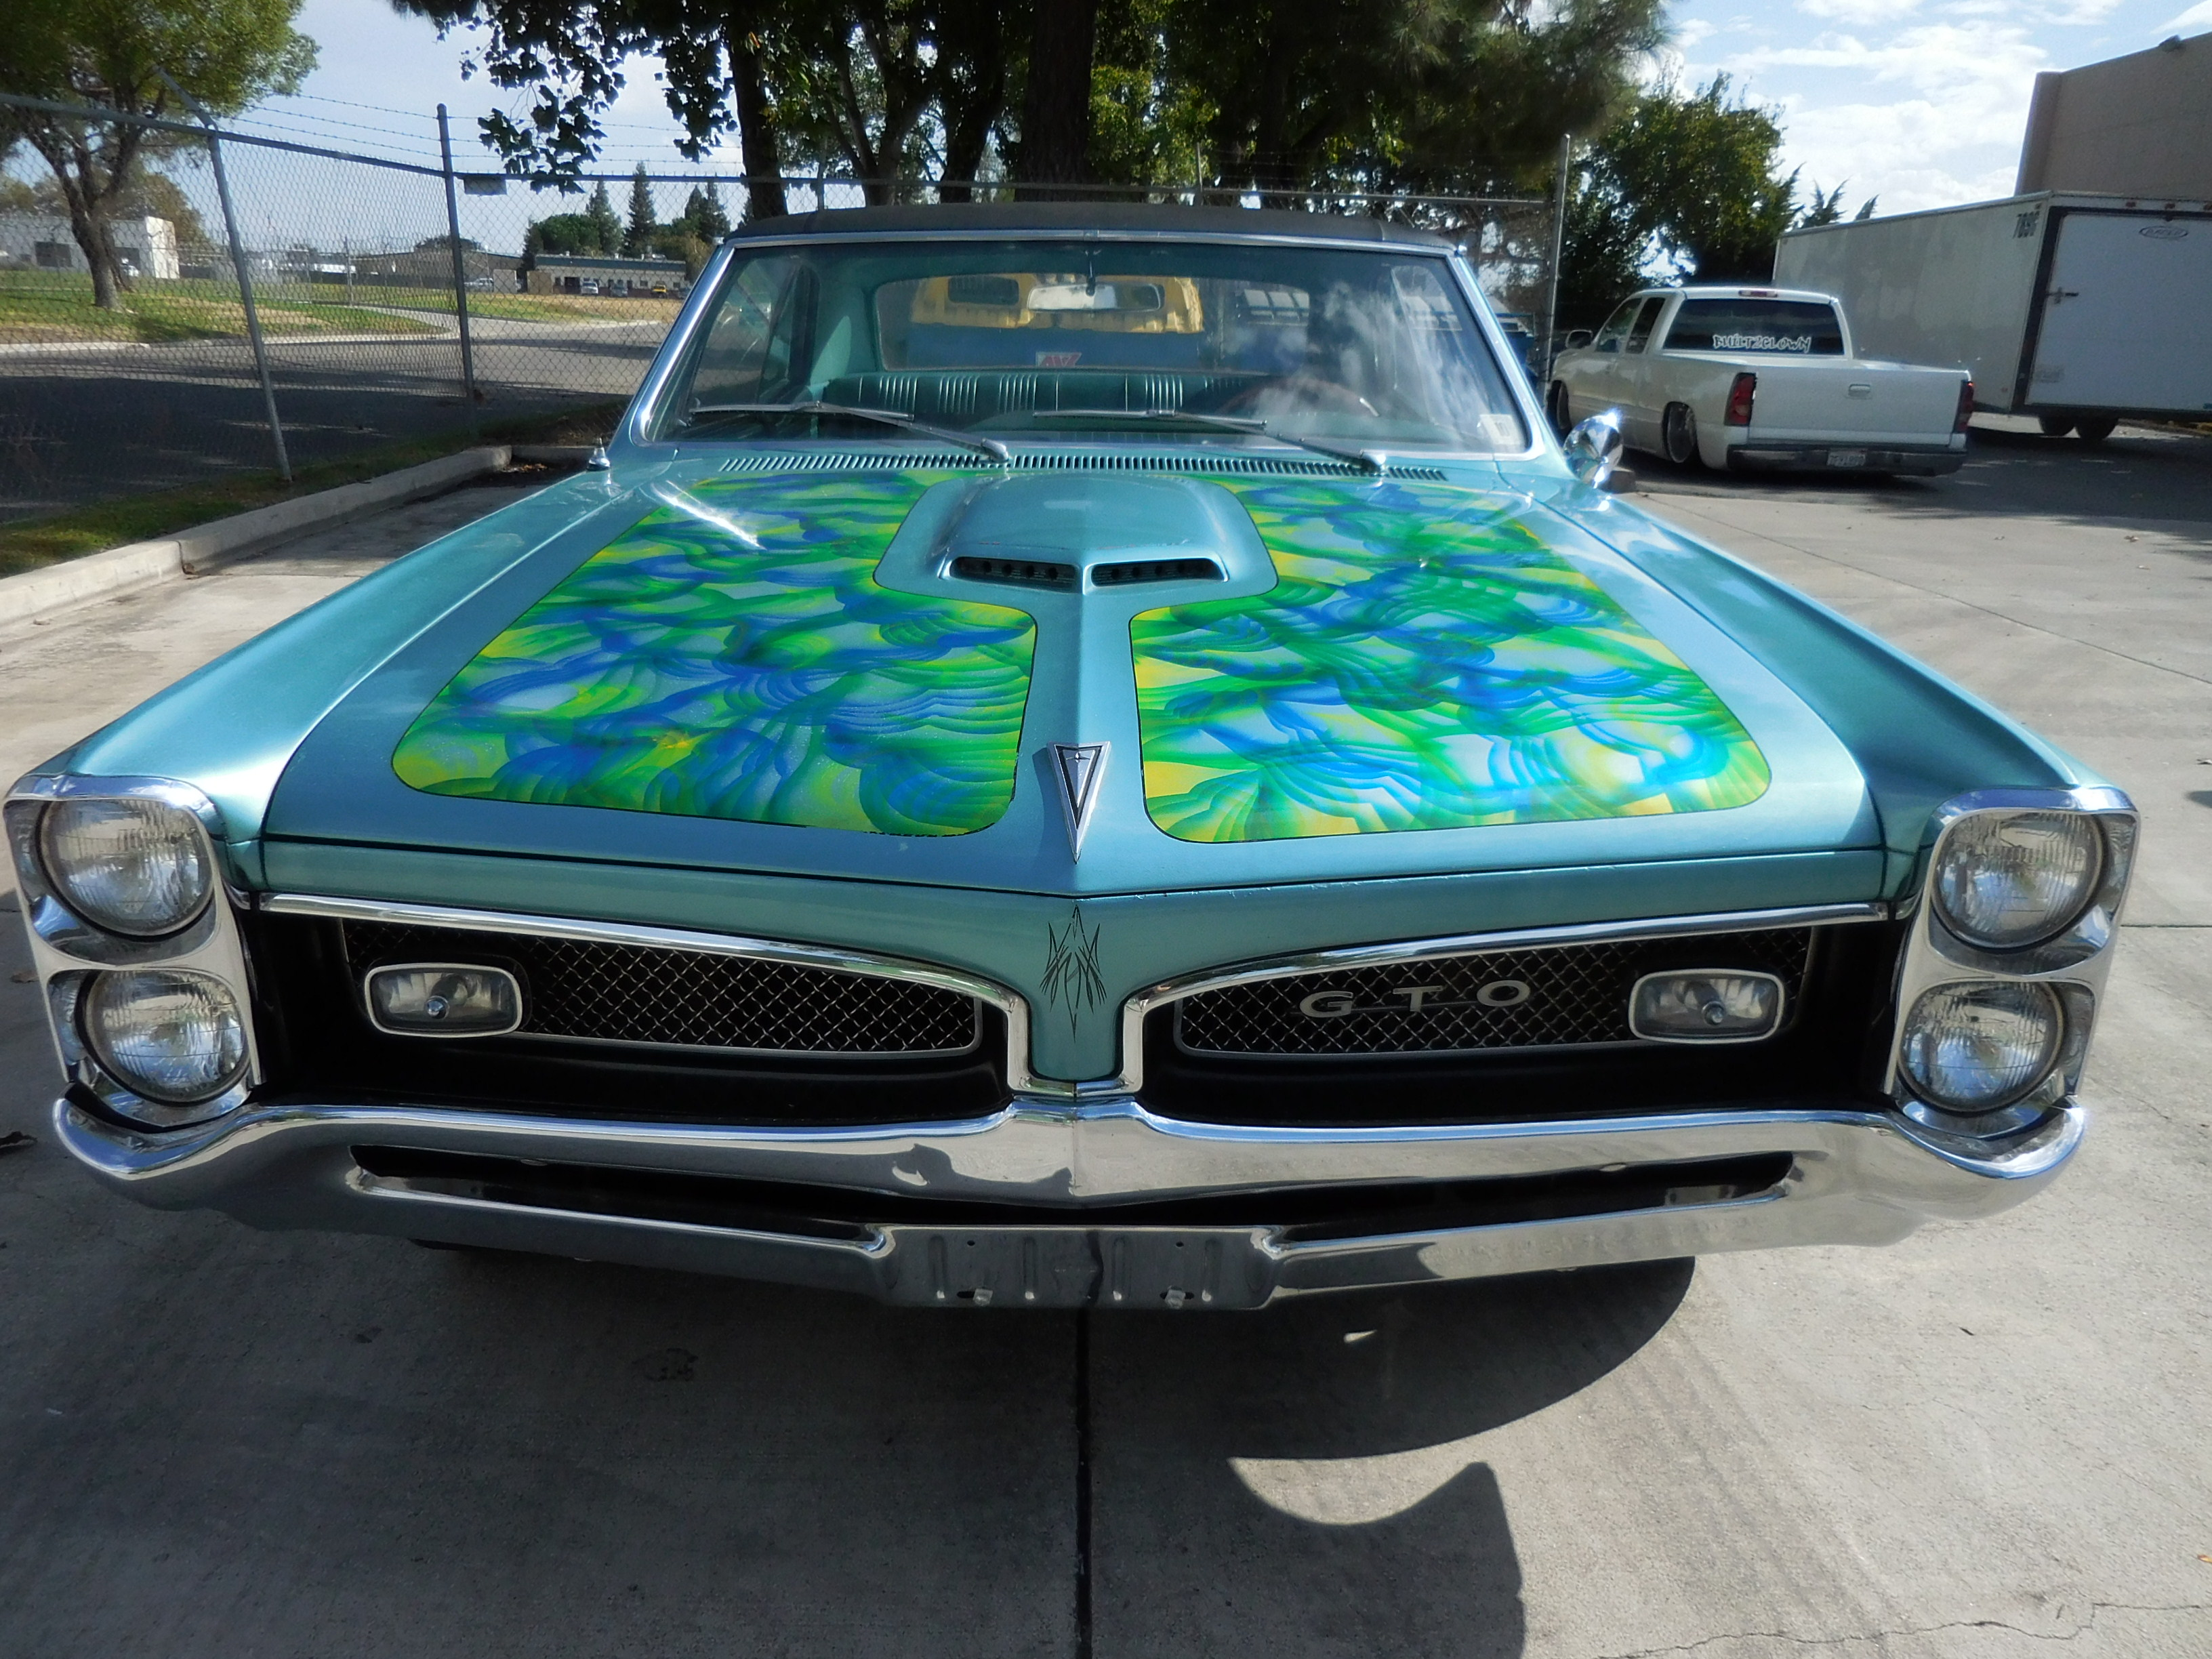 1967, Pontiac, GTO, 400, 4-speed, For, cars for sale, sale, car,parts,